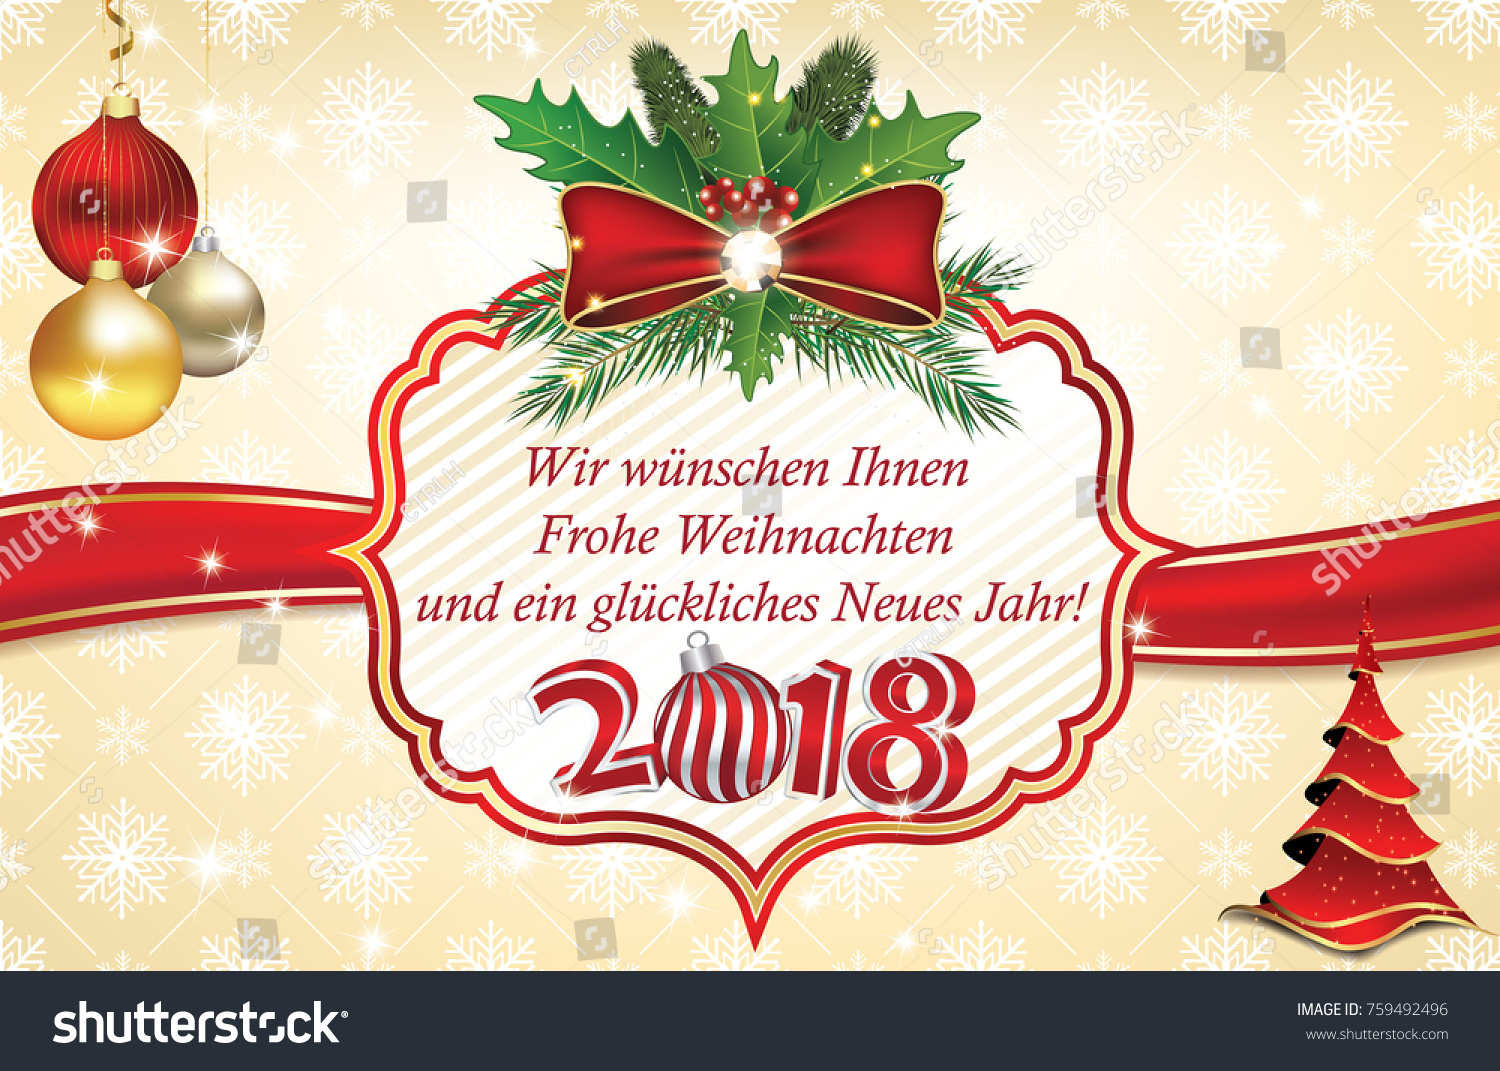 2018 Christmas New Year Greeting Card Stock Illustration 759492496